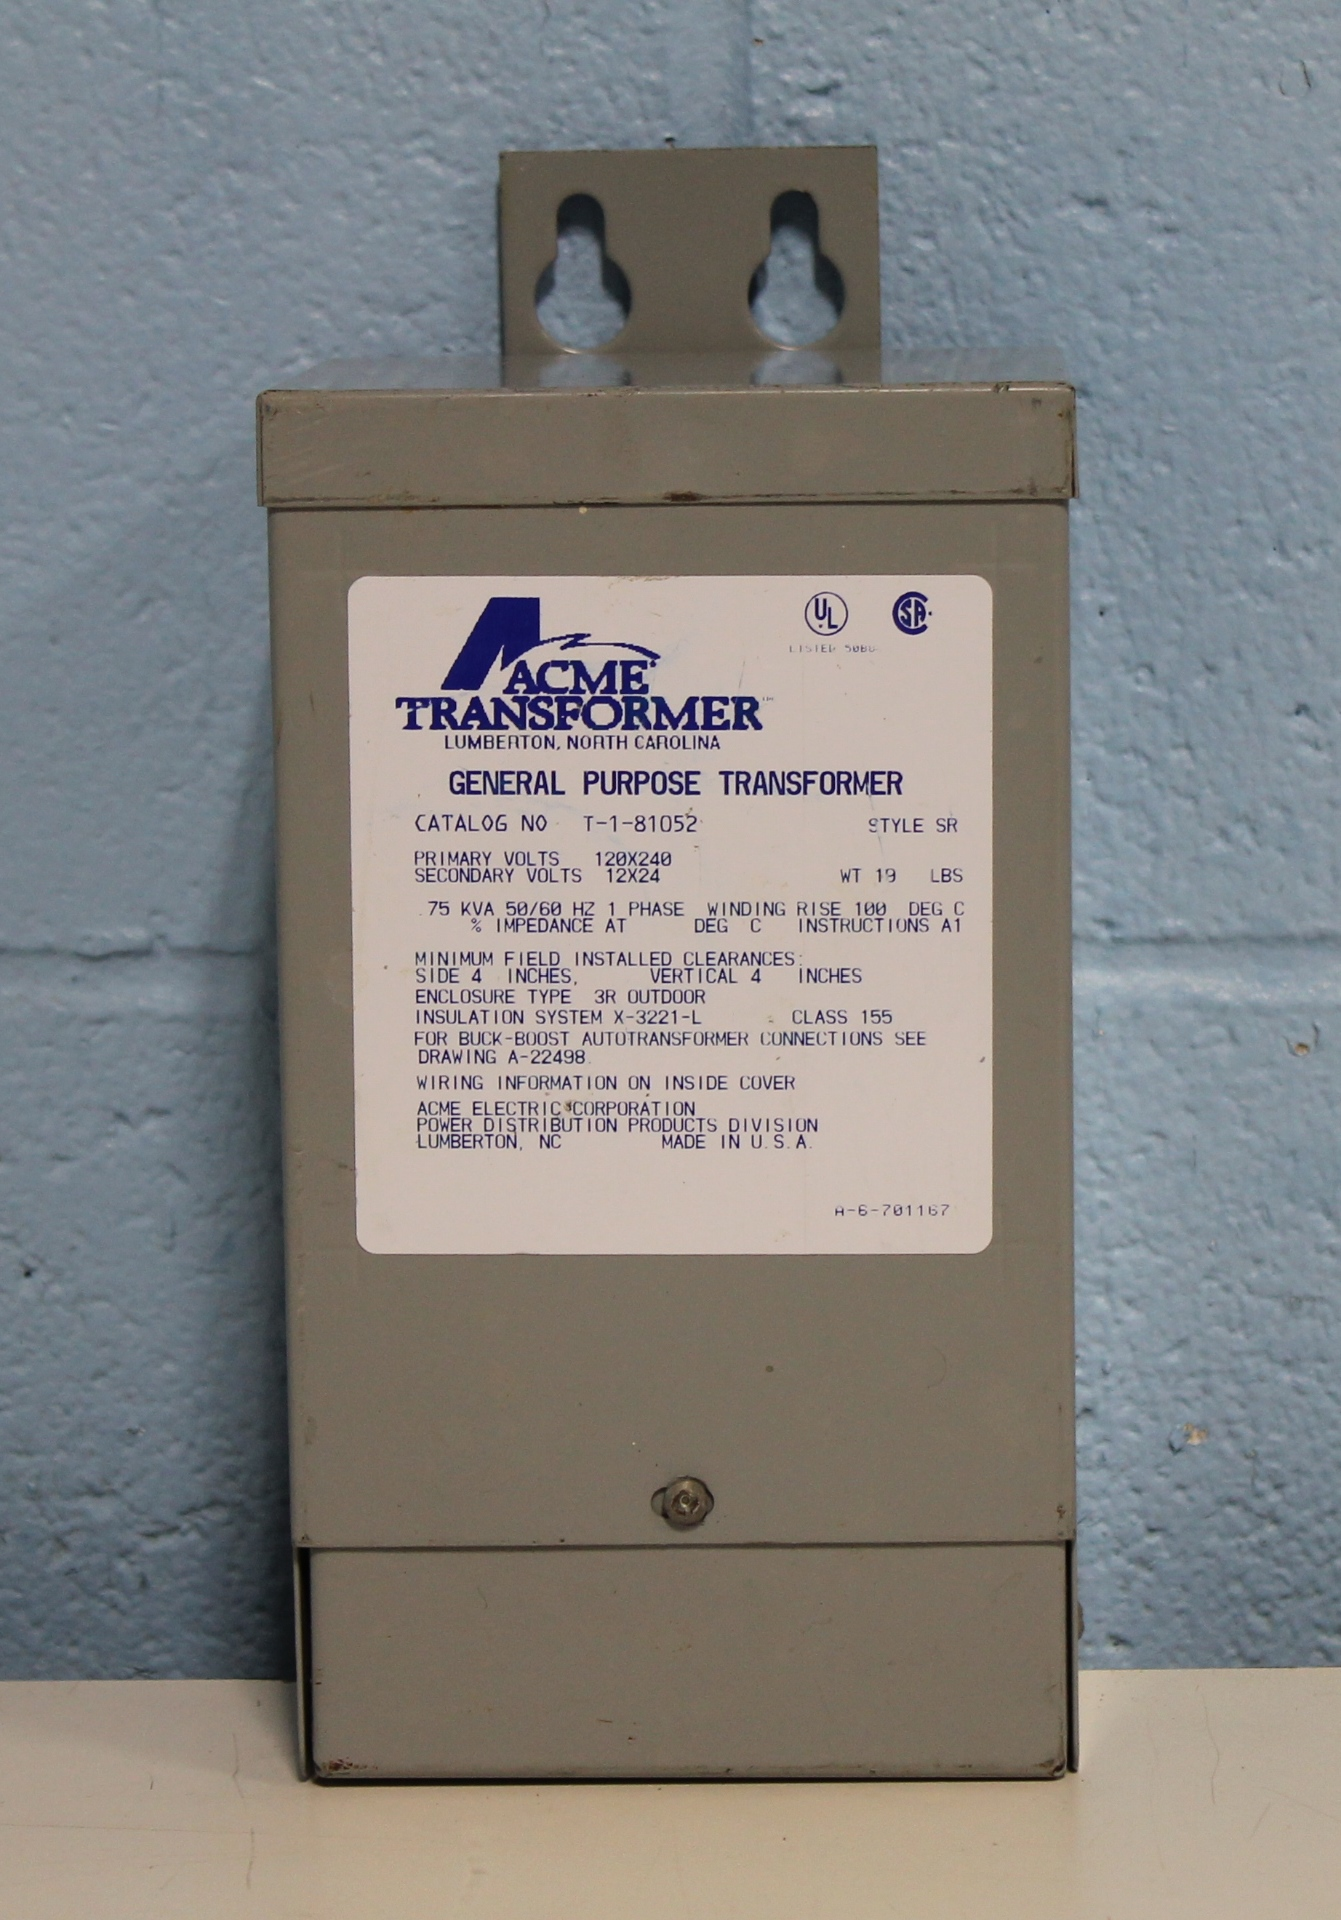 Refurbished Acme T181052 BuckBoost Transformer